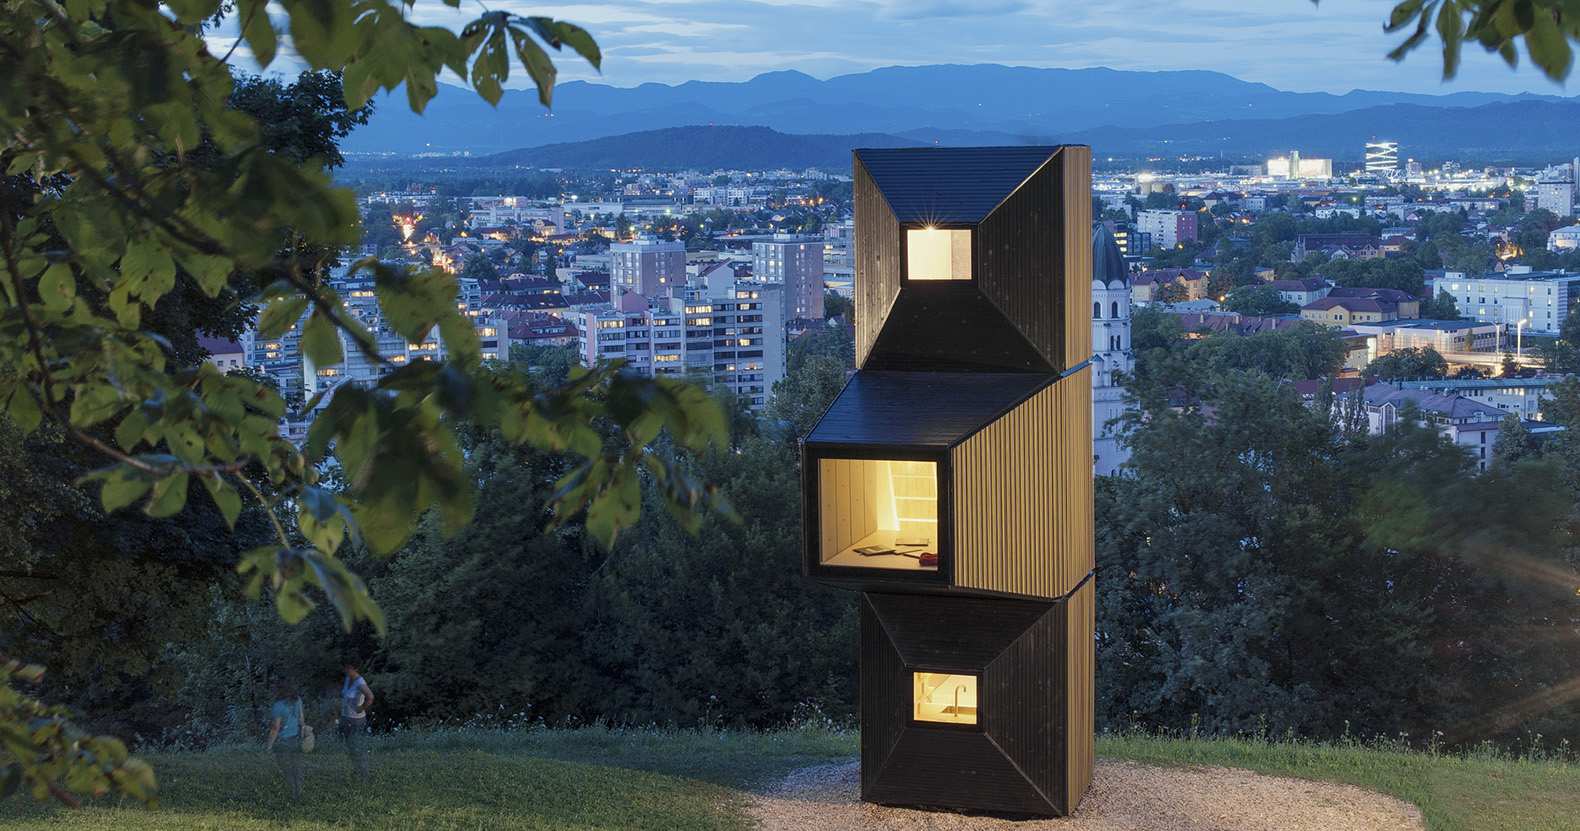 These wooden blocks can be stacked up to create cabins, treehouses, and wilderness shelters